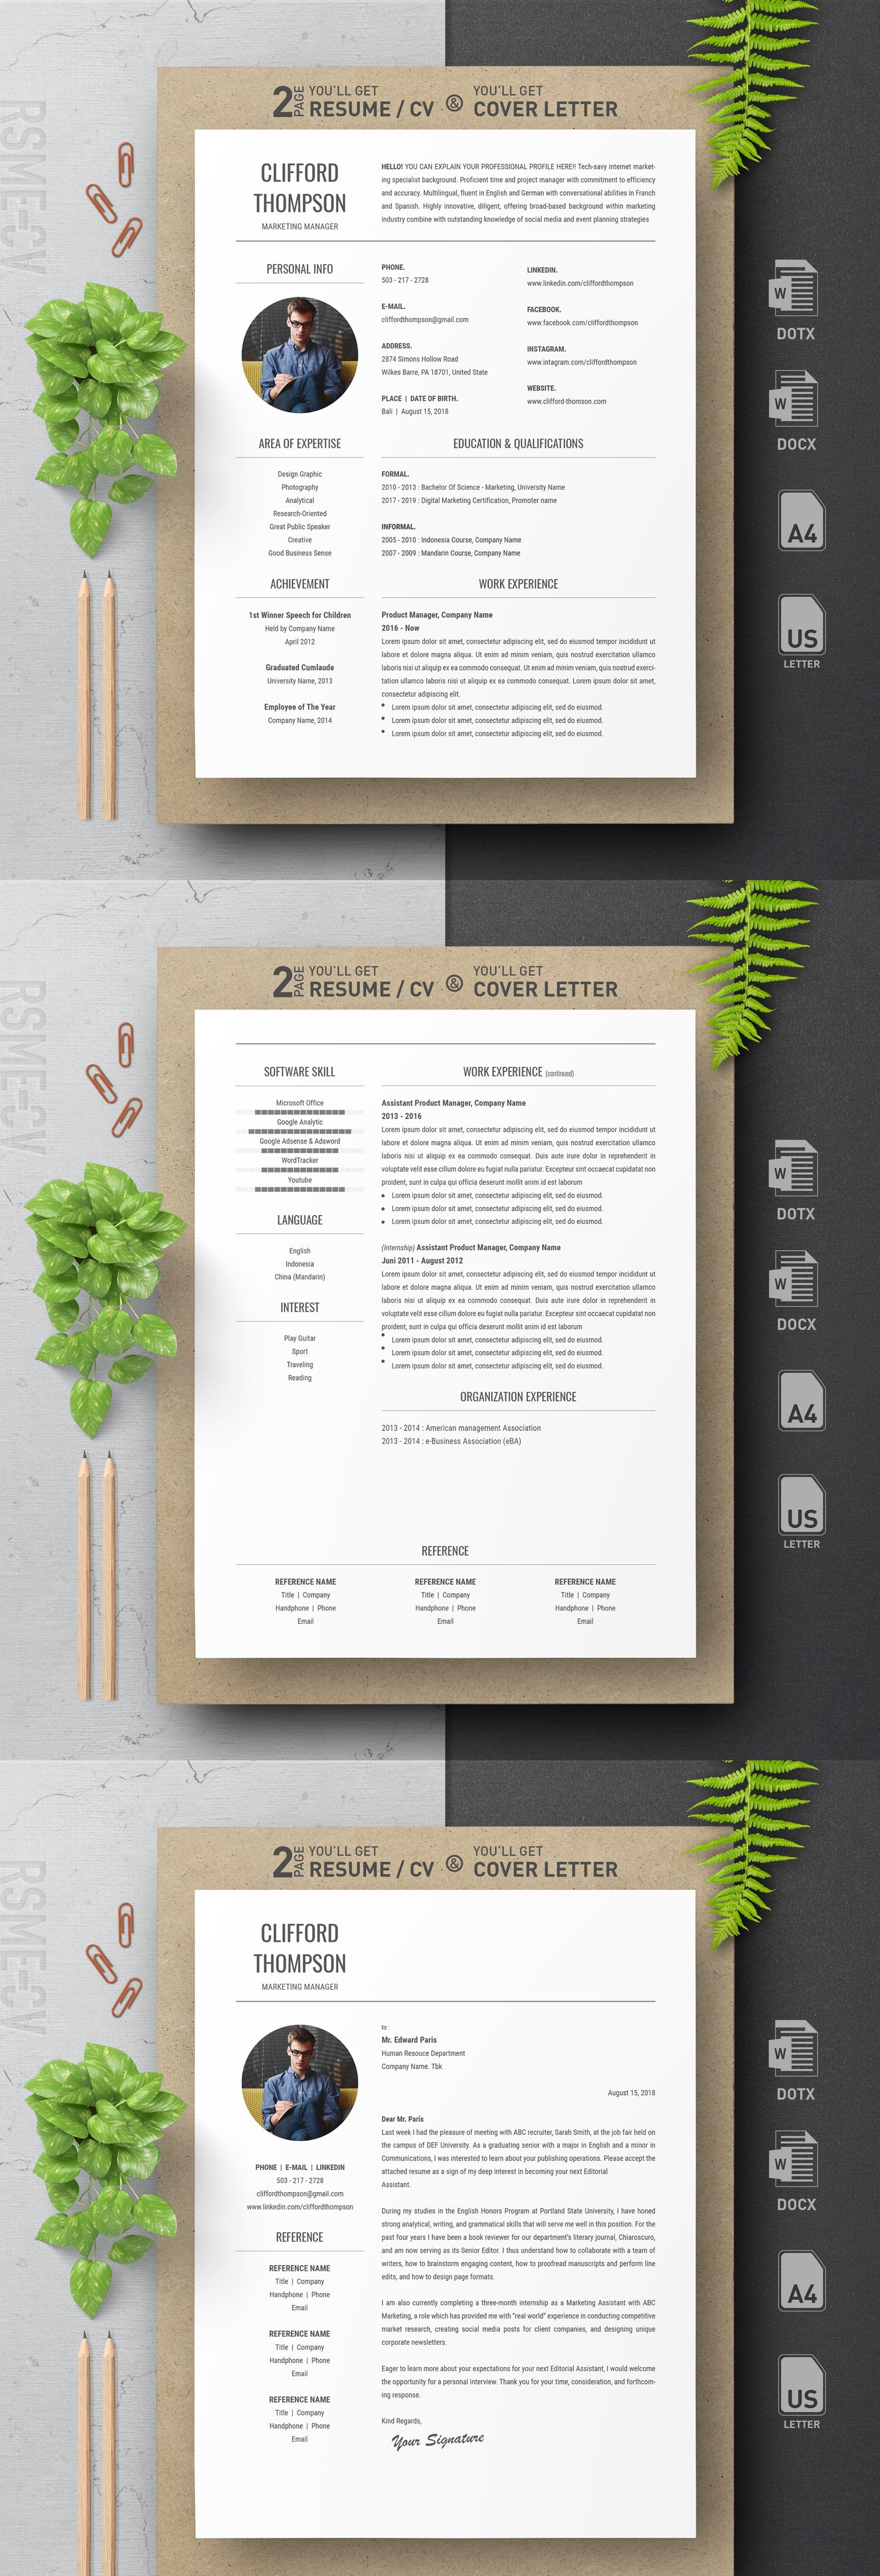 Black And White Simple Professional Clean Resume Template With Cover Letter For Microsoft Word 2018 Interior Design Resume